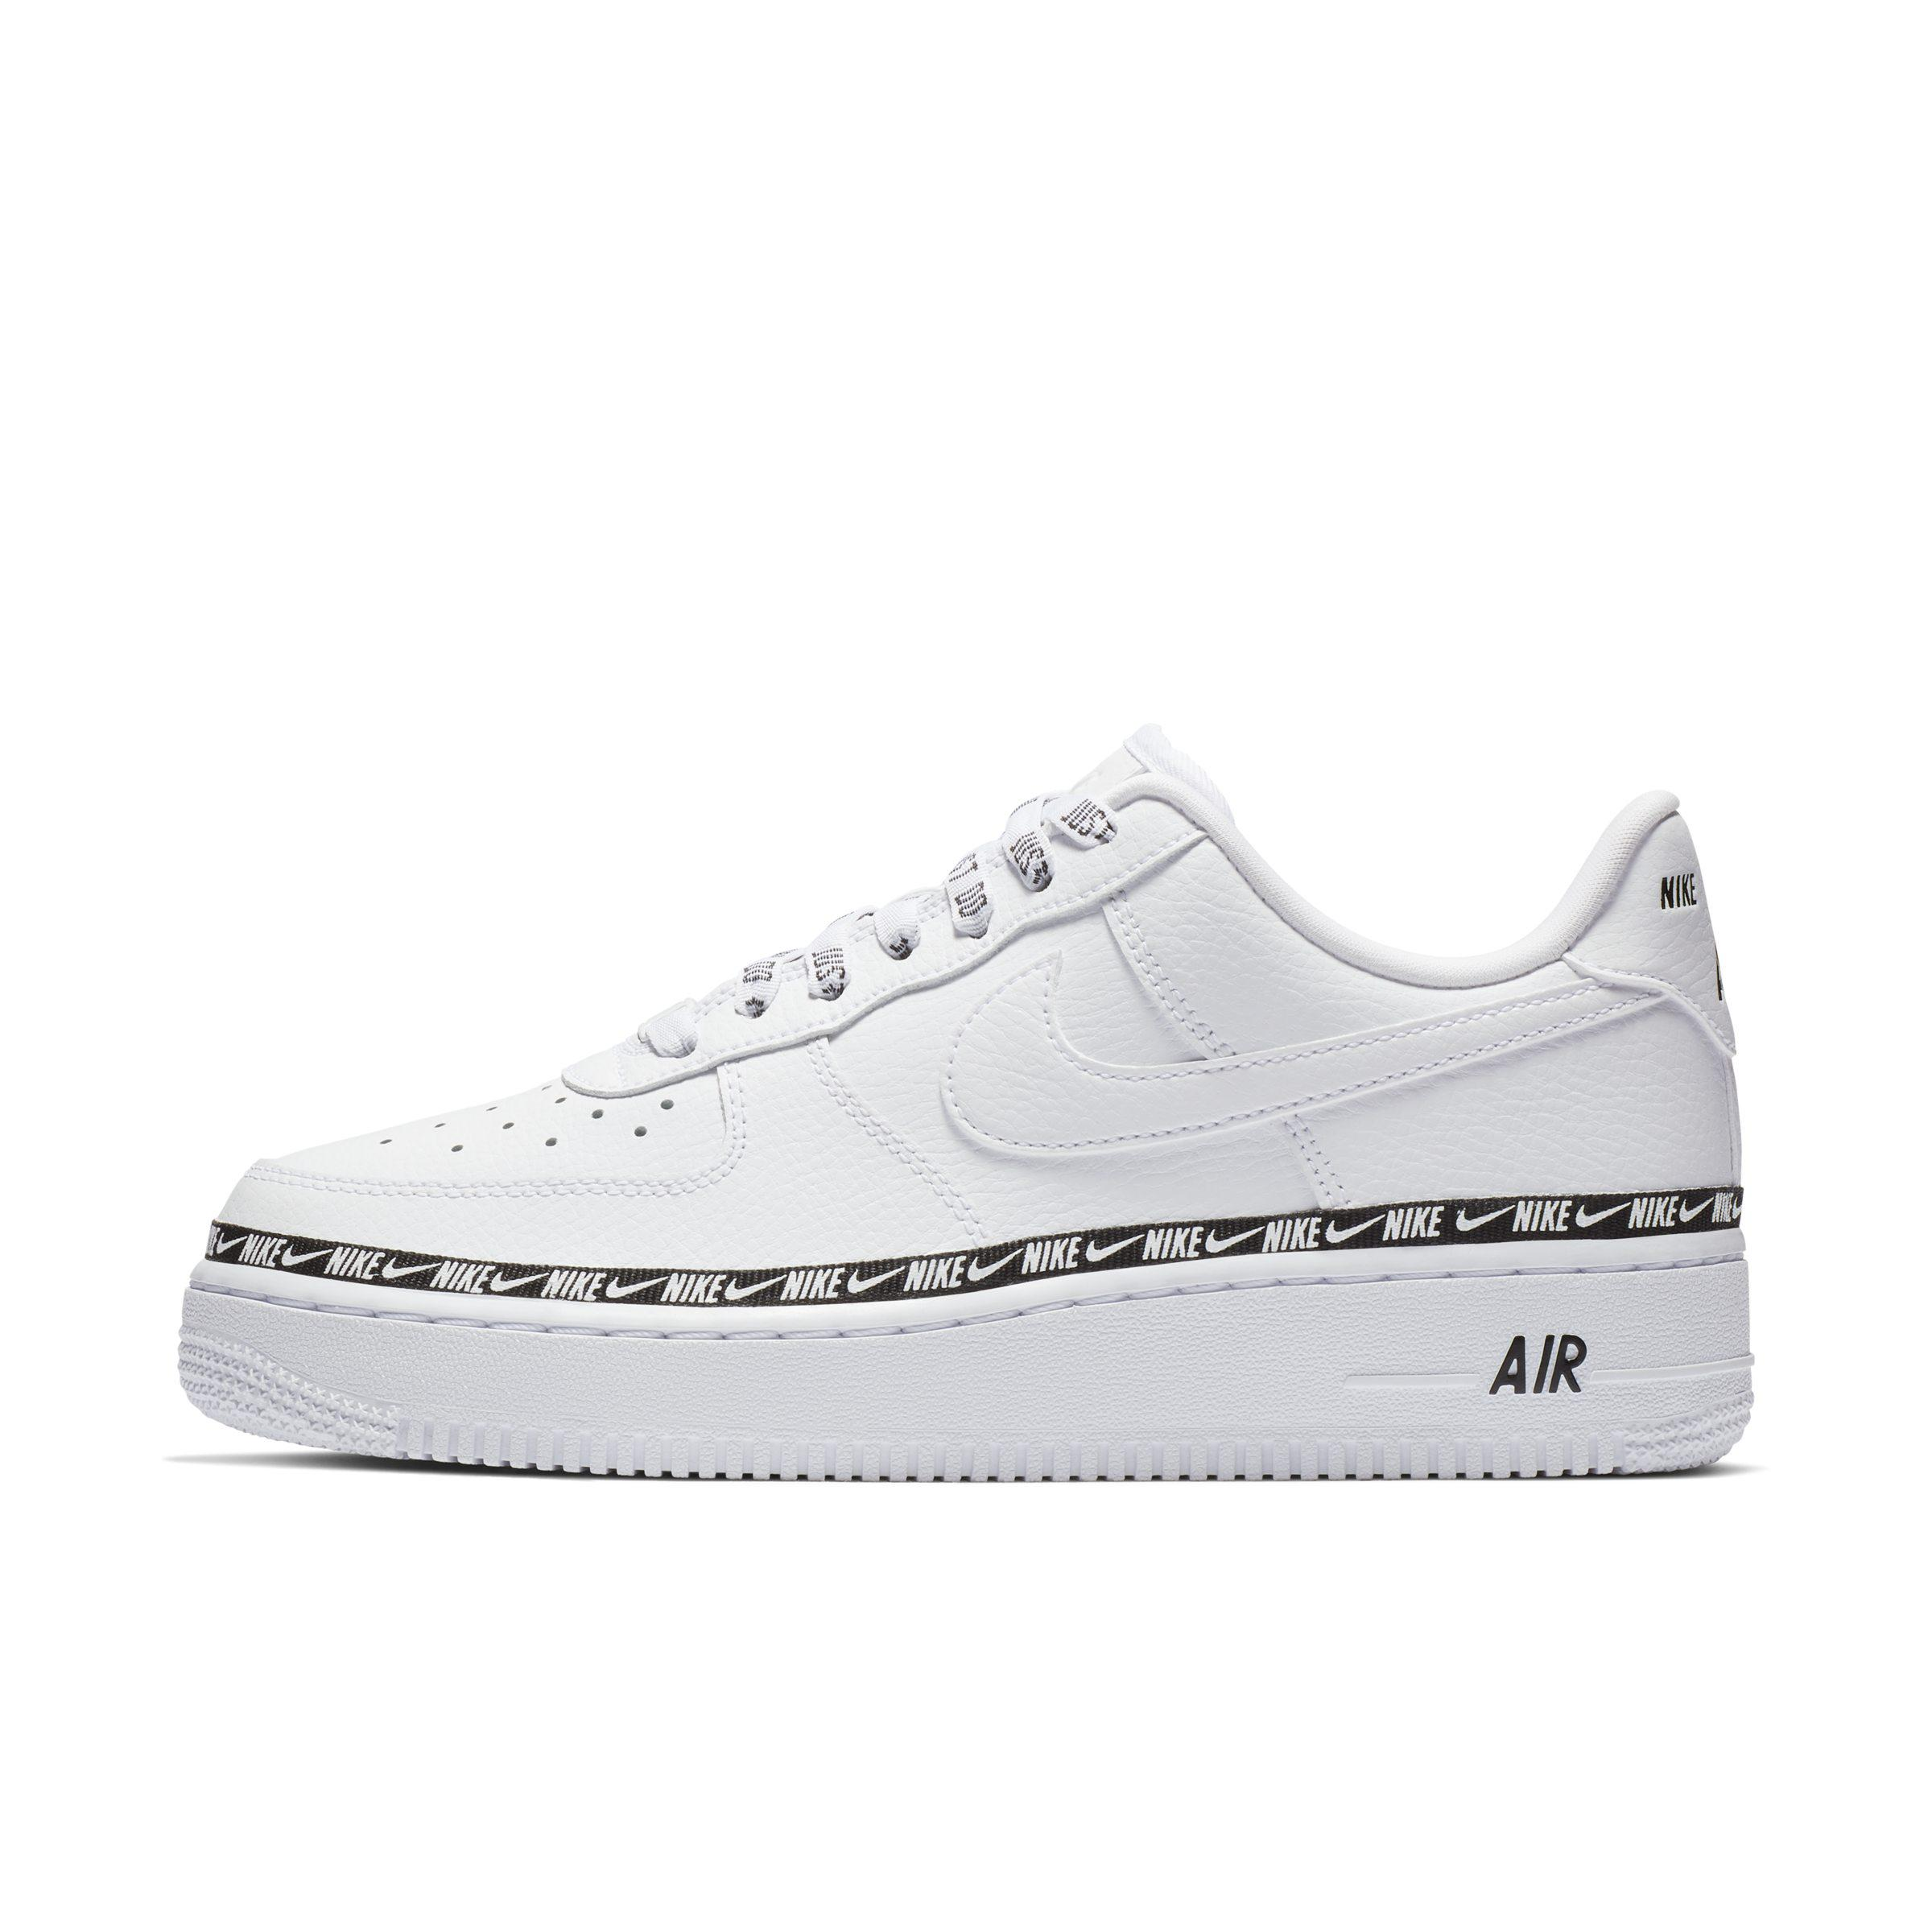 finest selection 2c055 e8a39 Nike Air Force 1  07 Se Premium Shoe in White - Lyst